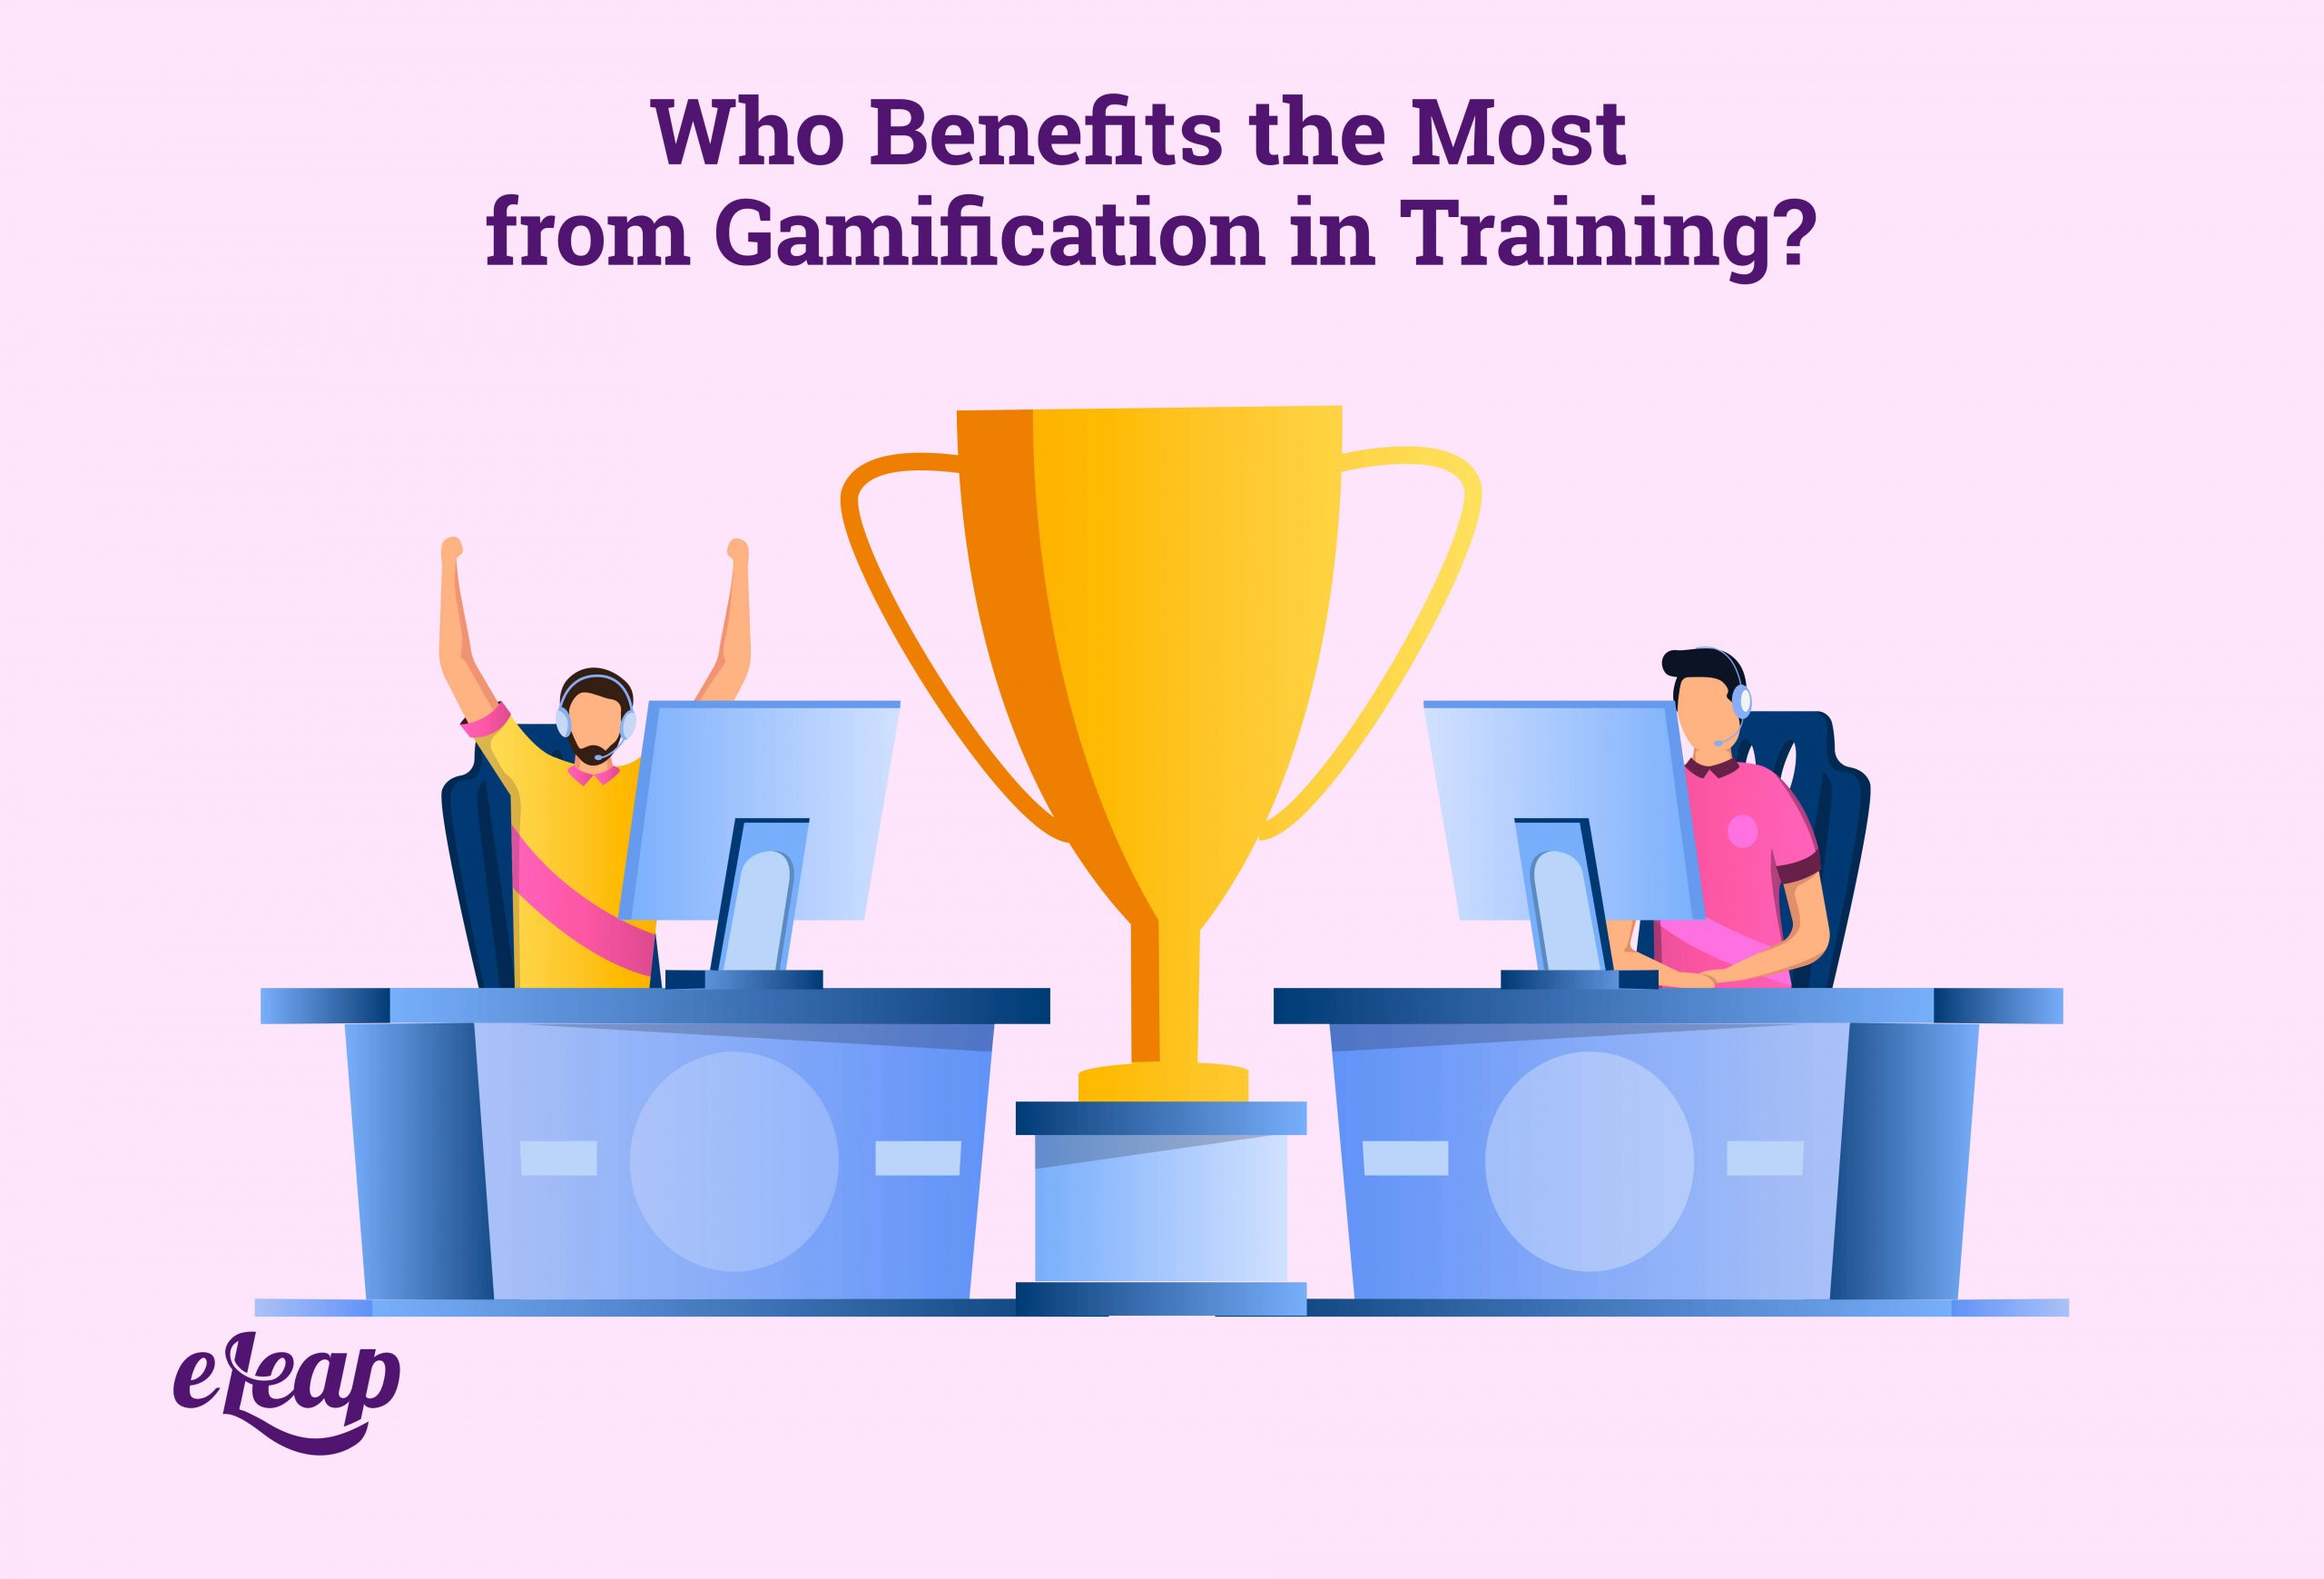 Who Benefits the Most from Gamification in Training?